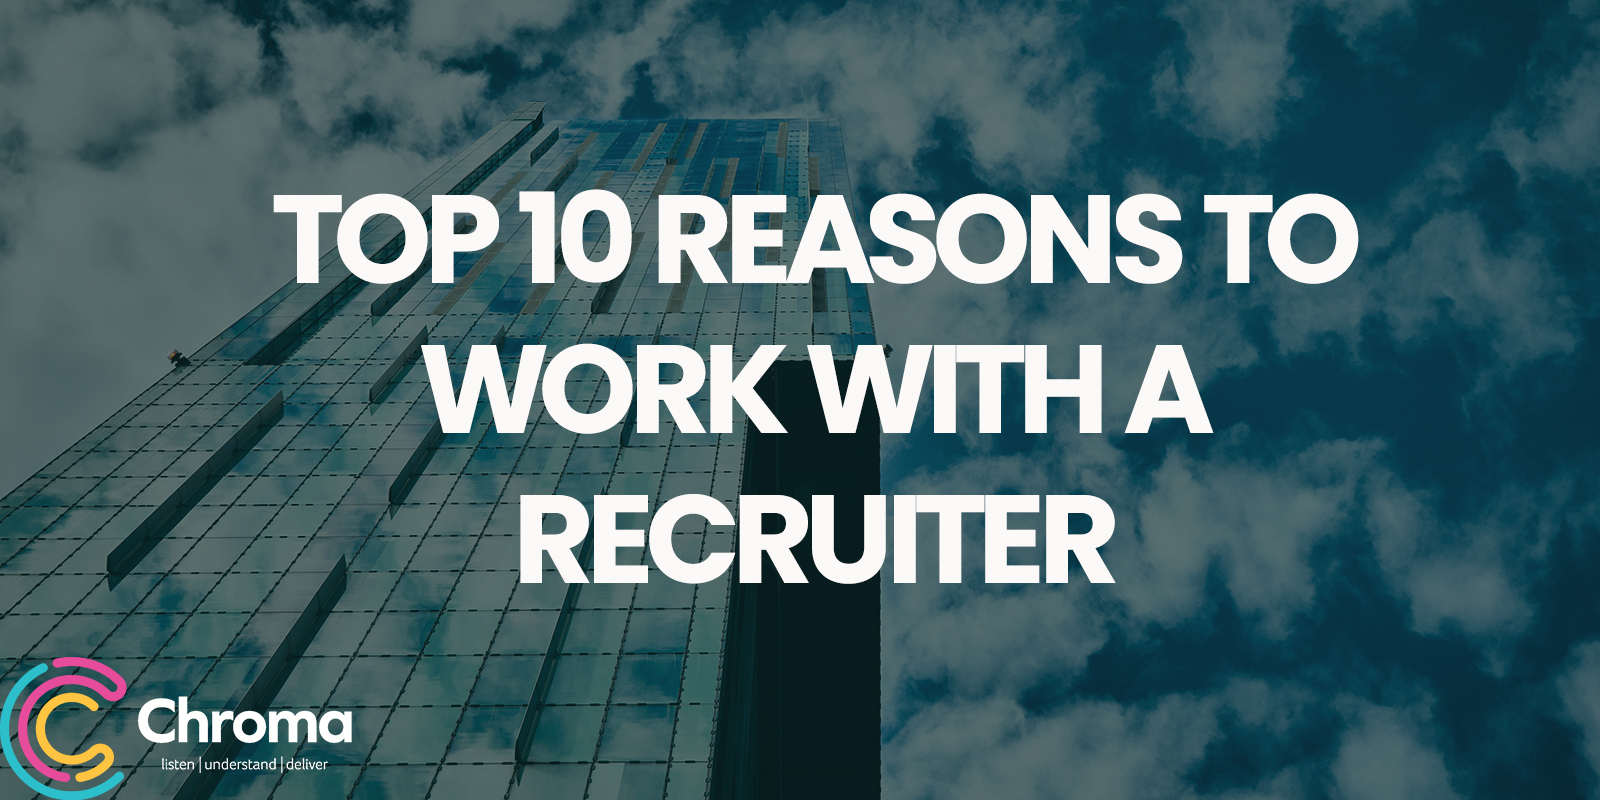 Top 10 reasons to work with a recruiter